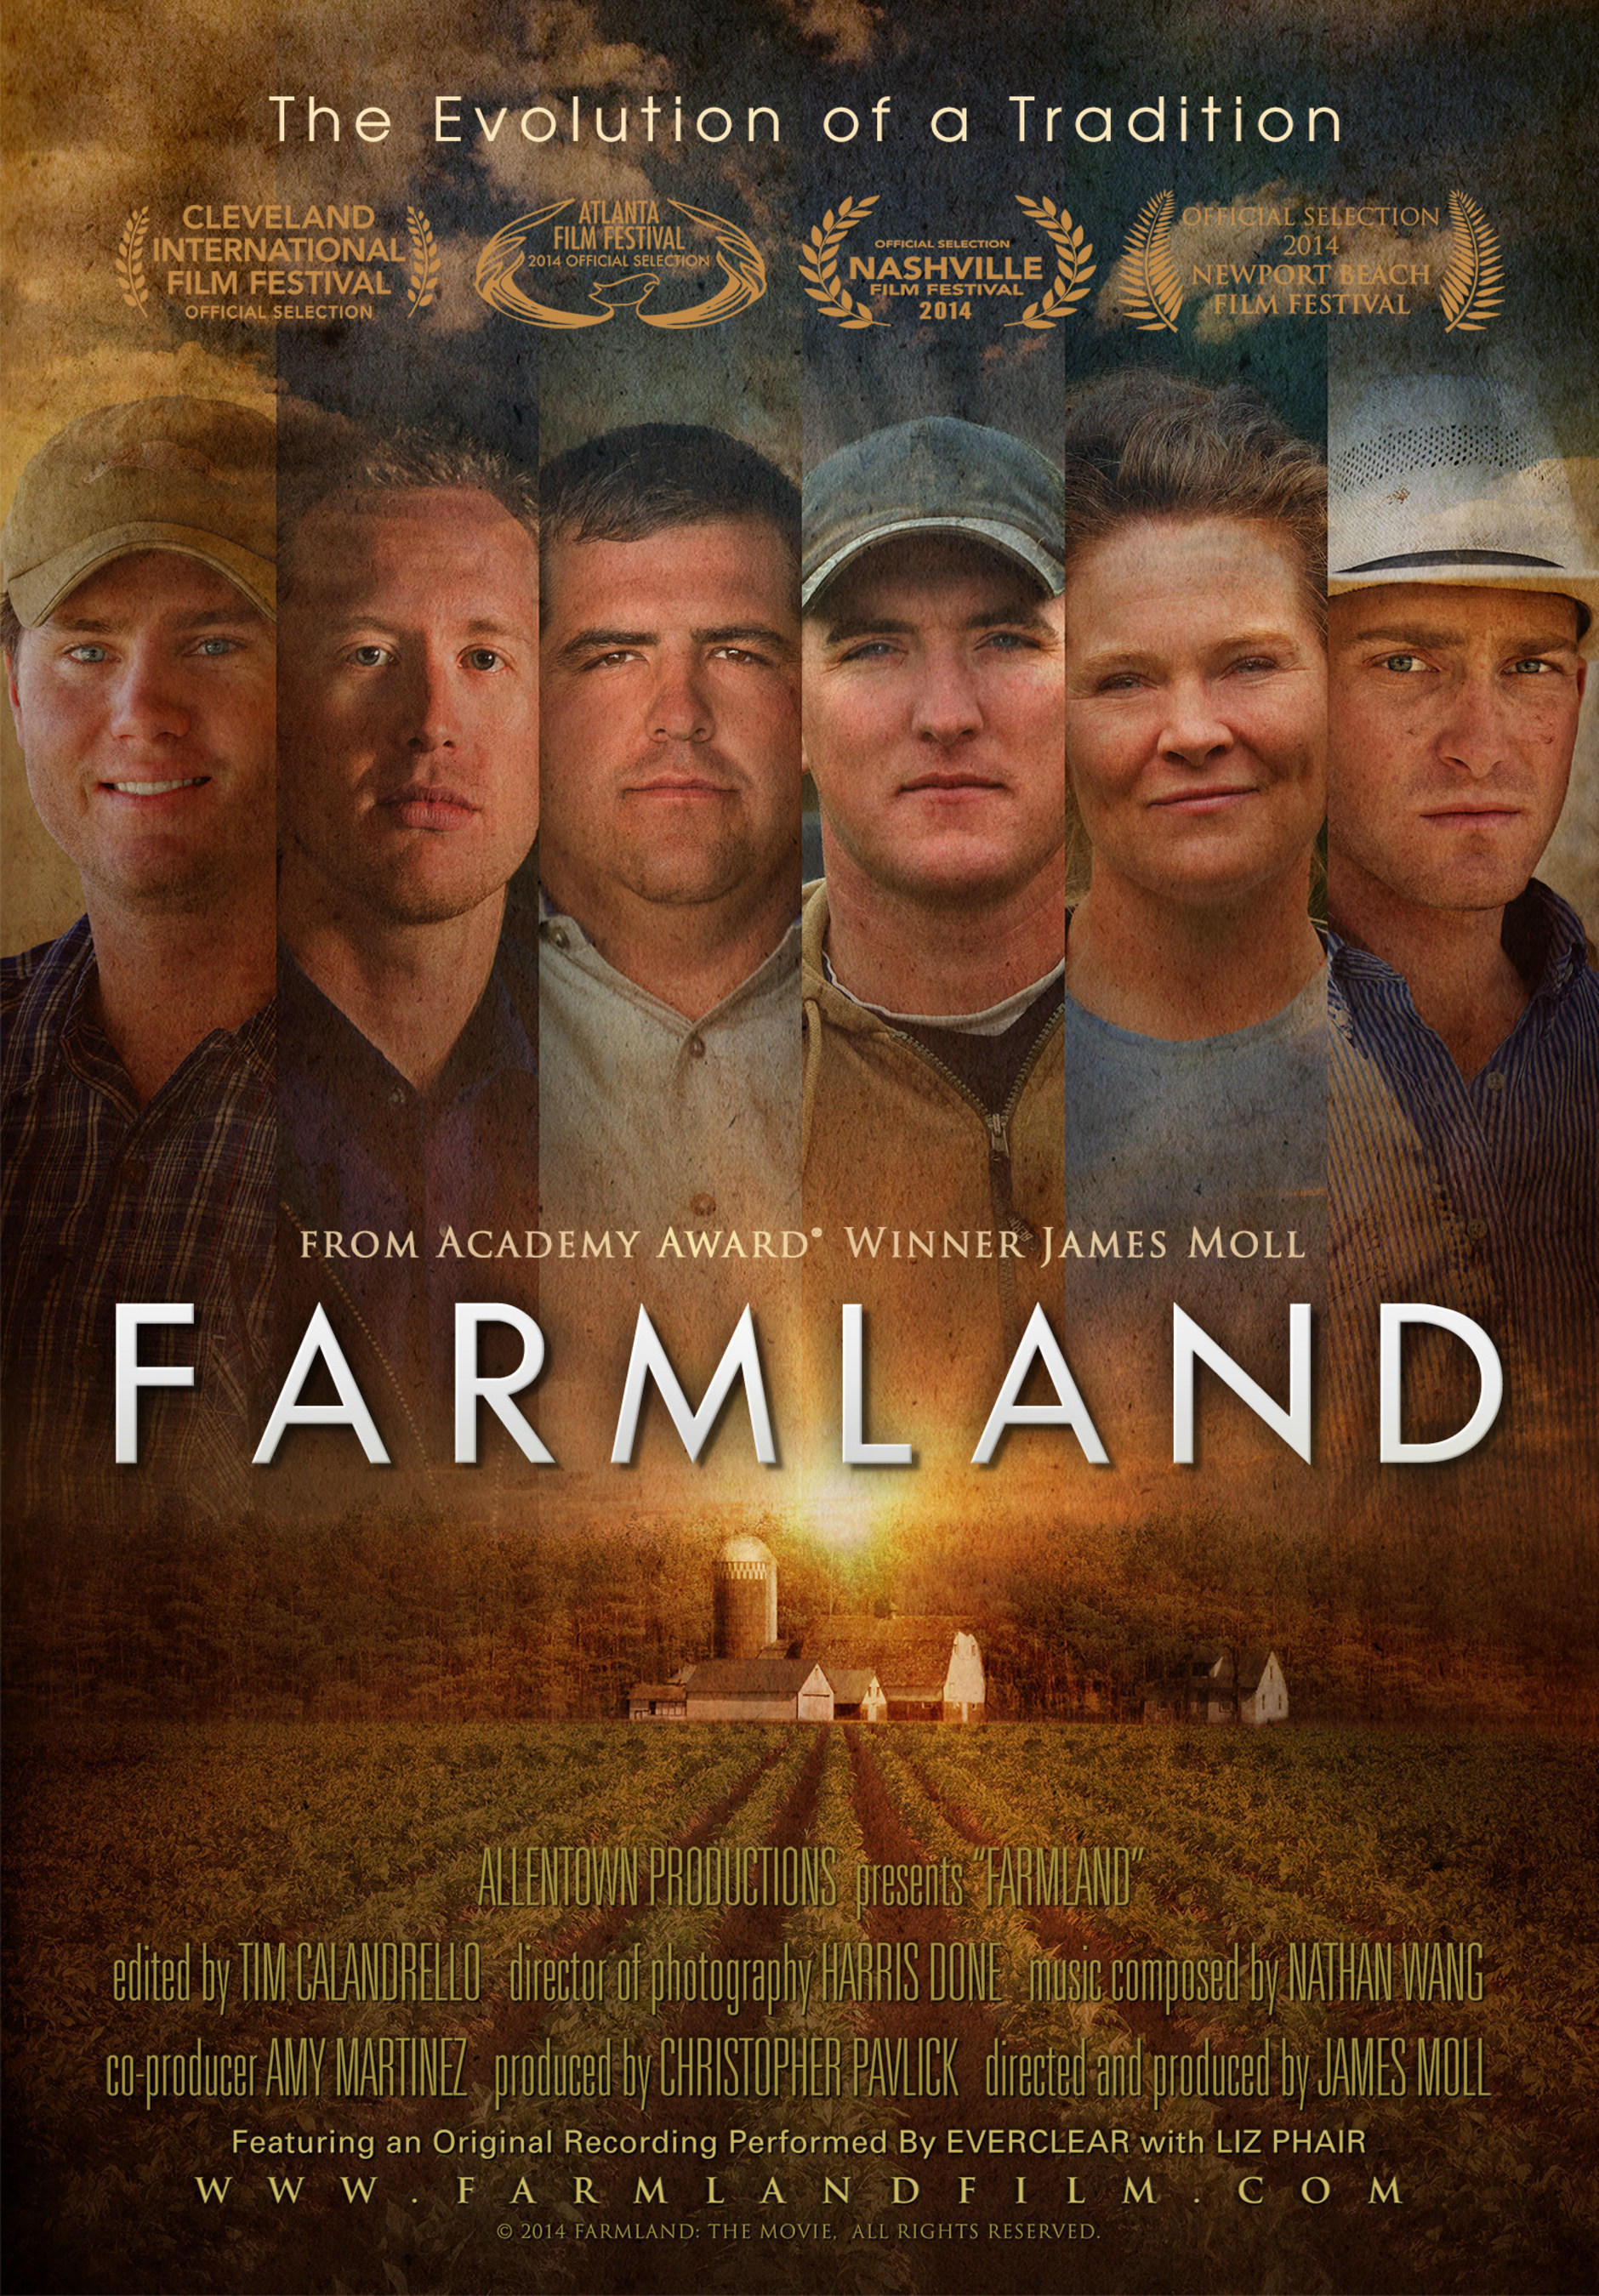 Farmland, From Academy Award'-Winning Director James Moll, Confirms National DVD Launch